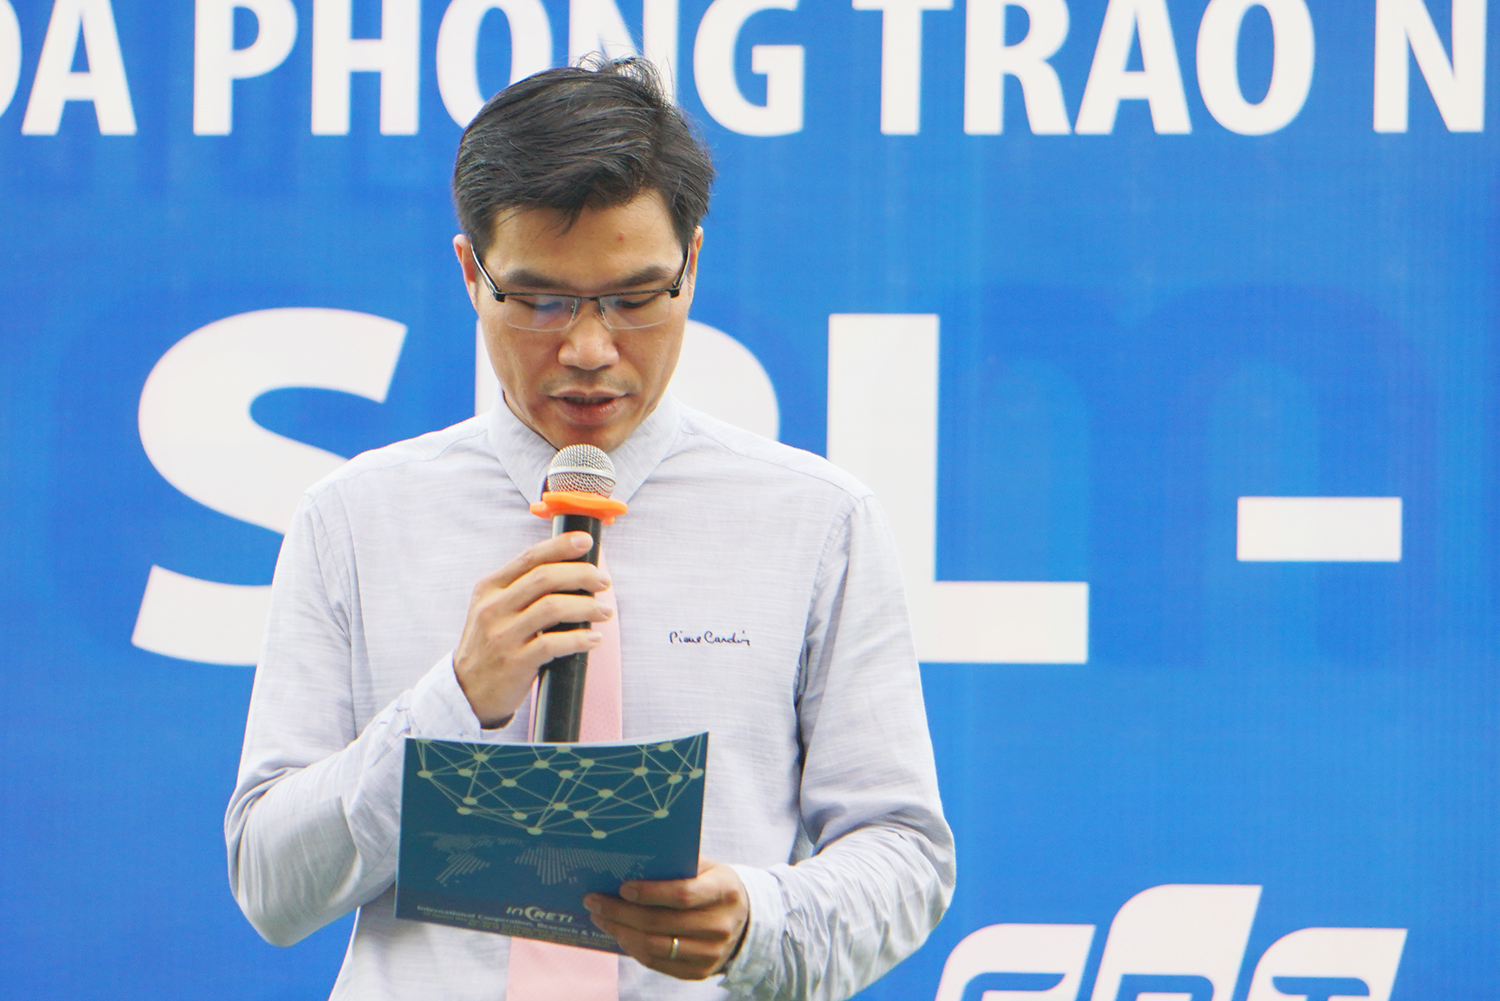 Dr. Tran Trong Dao, TDTU Vice President delivering the opening speech